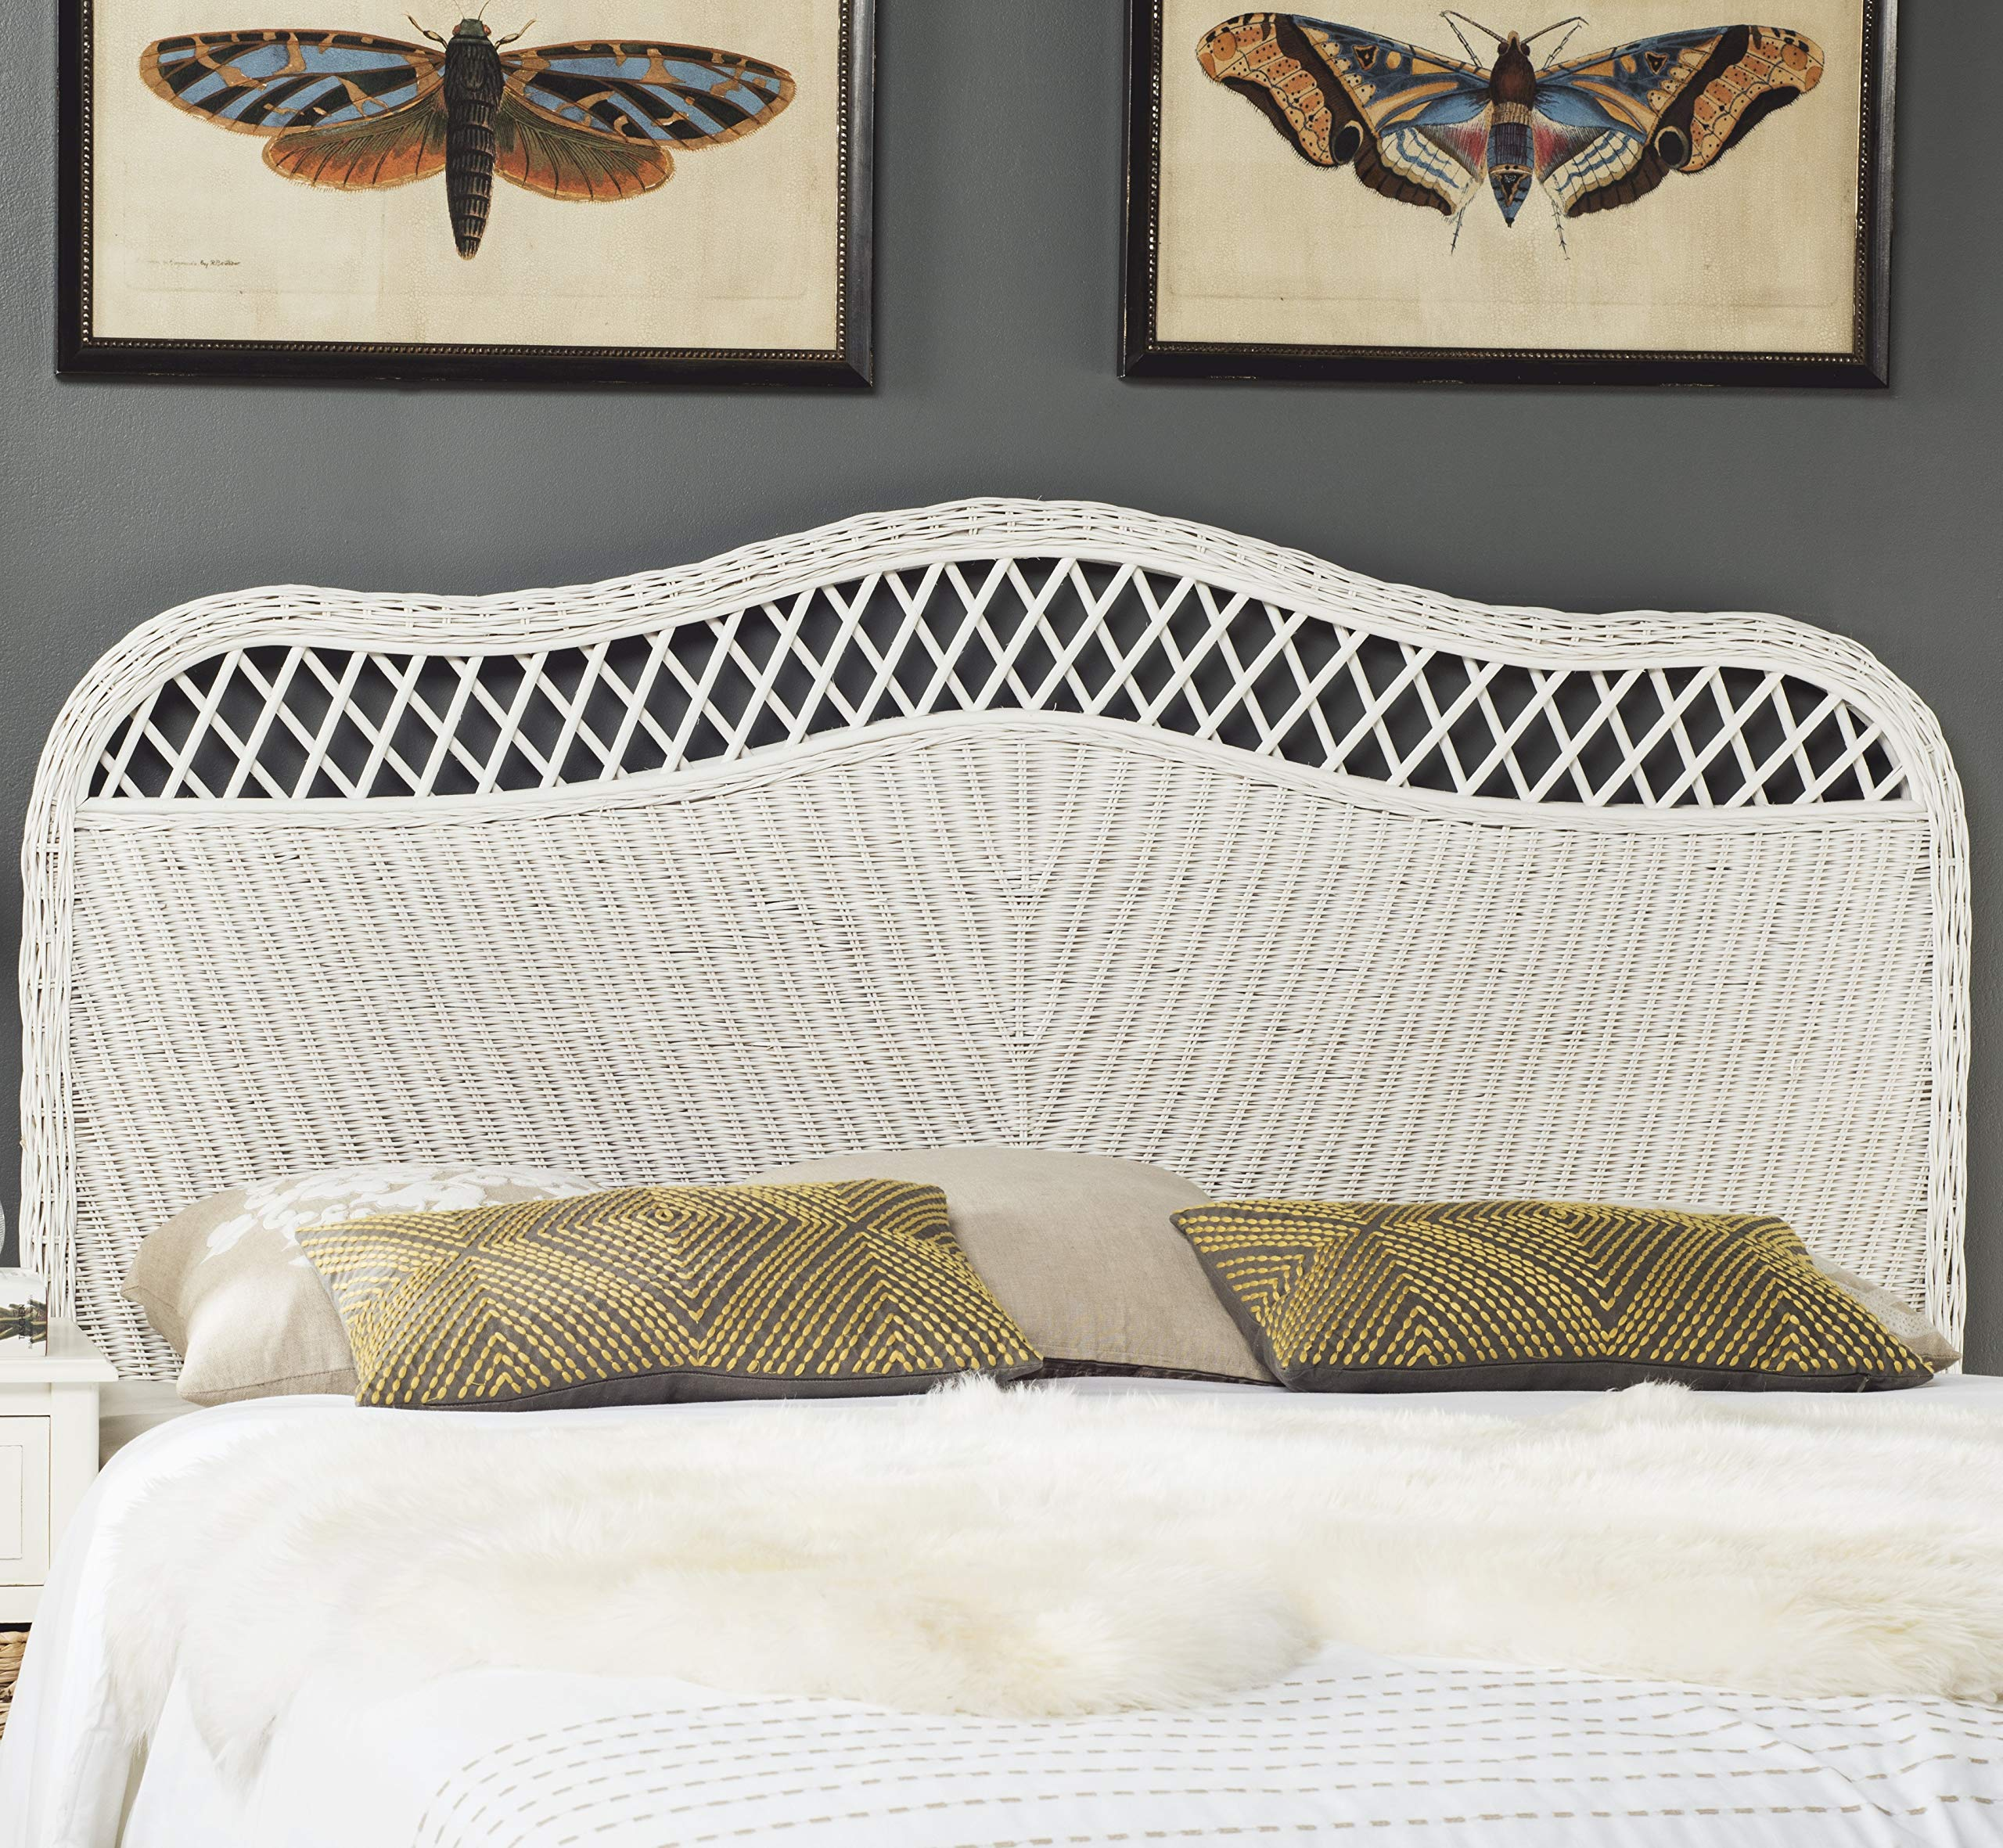 Safavieh Home Collection Sephina White Rattan Headboard (Queen) by Safavieh